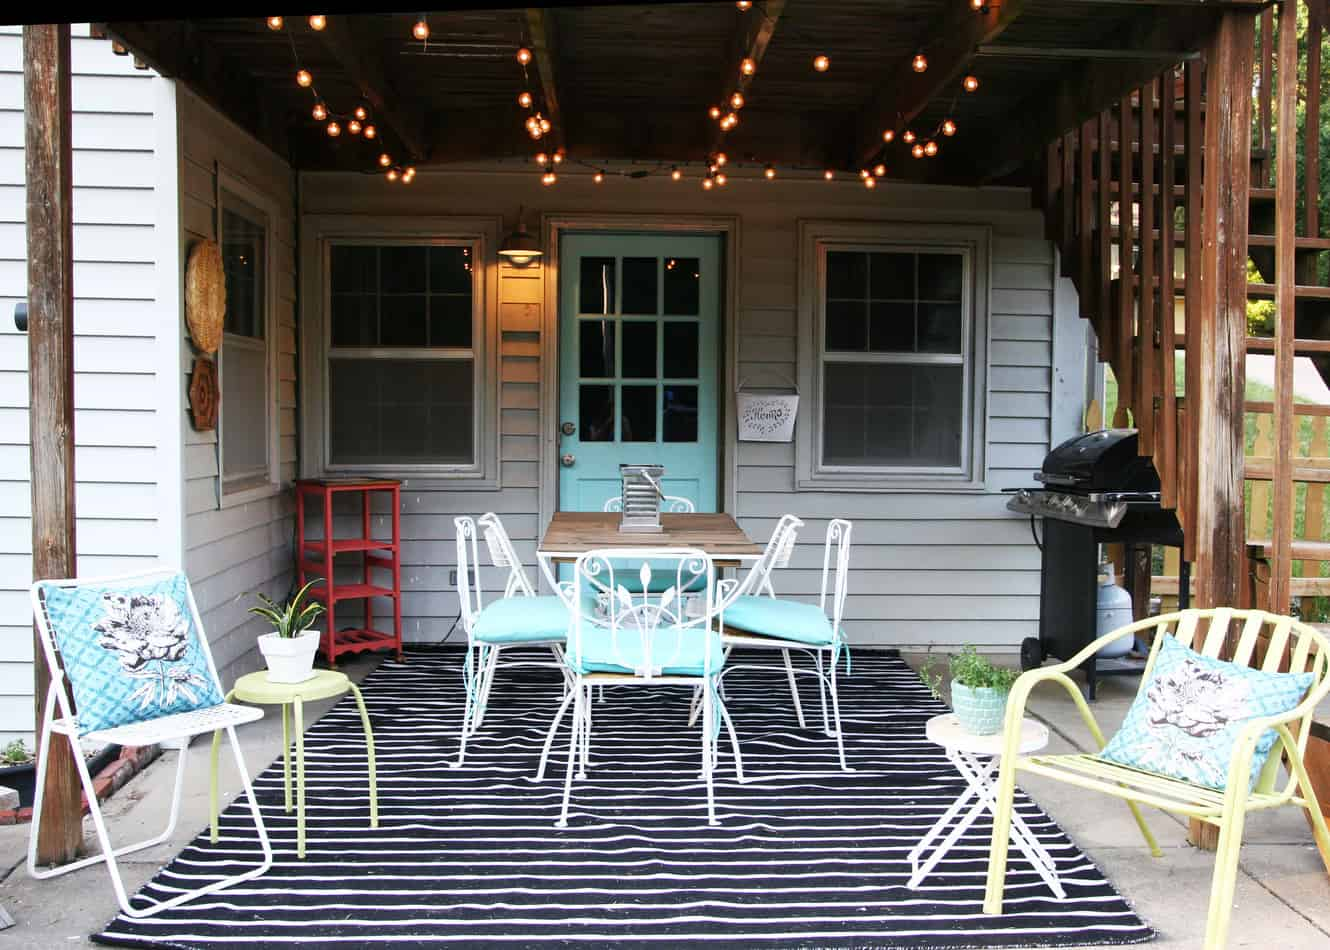 Patio Ideas For A Tight Budget: Patio Makeover On A Budget